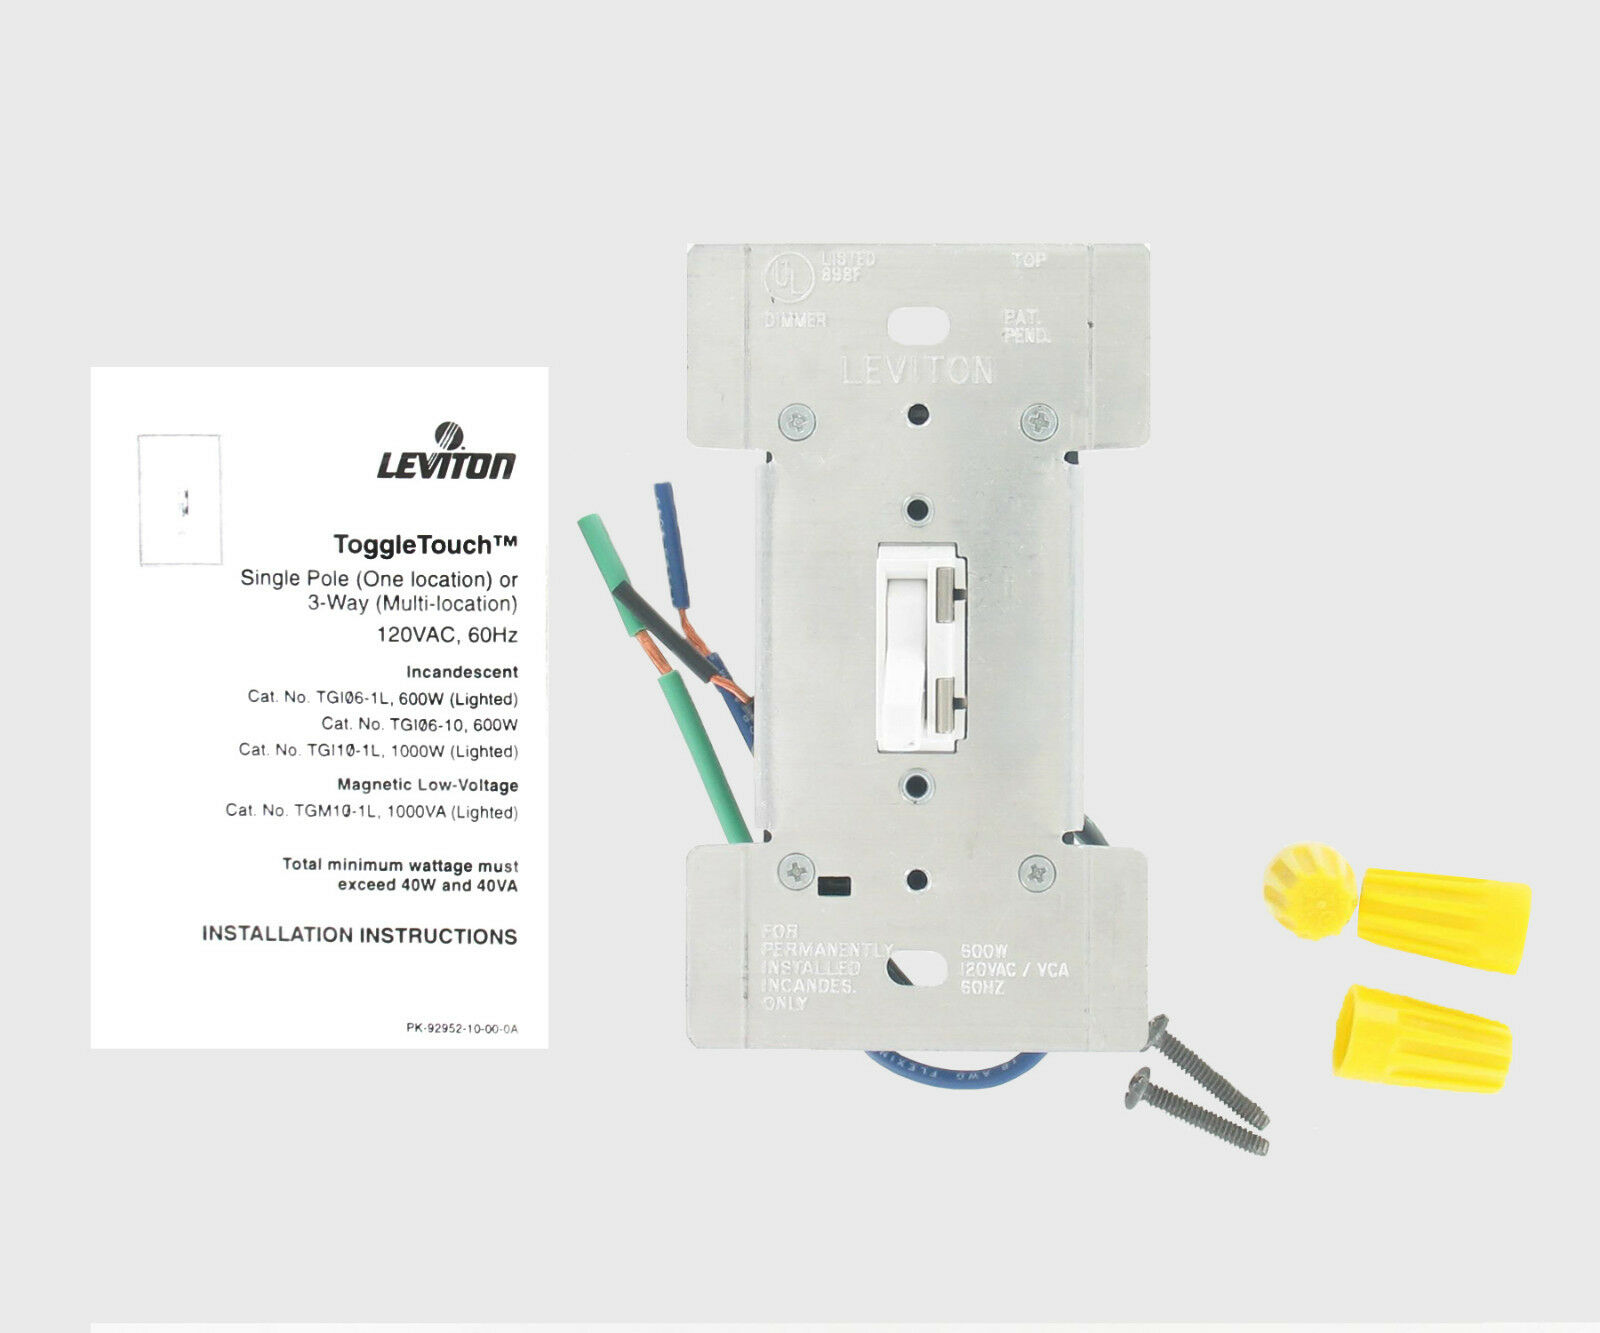 Leviton white toggle touch dimmer 600w incandescent 120v tgi06 10w leviton white toggle touch dimmer 600w incandescent 120v tgi06 10w ebay sciox Images